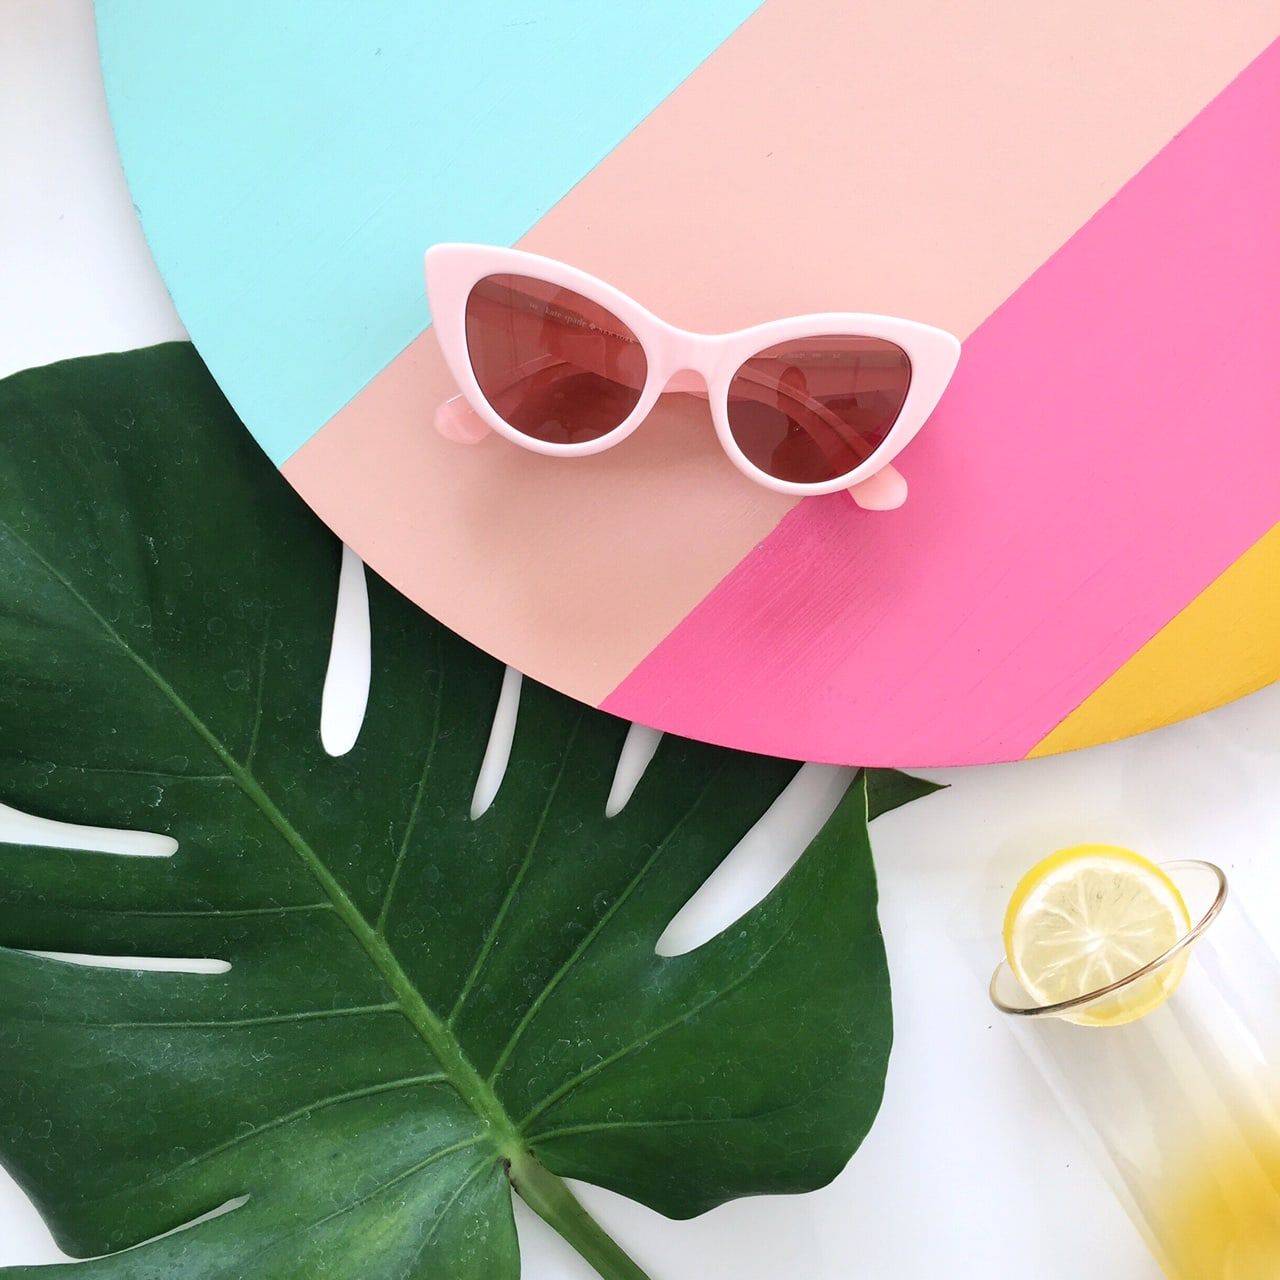 Summer ready with kate spade new york glasses! - sugar and cloth